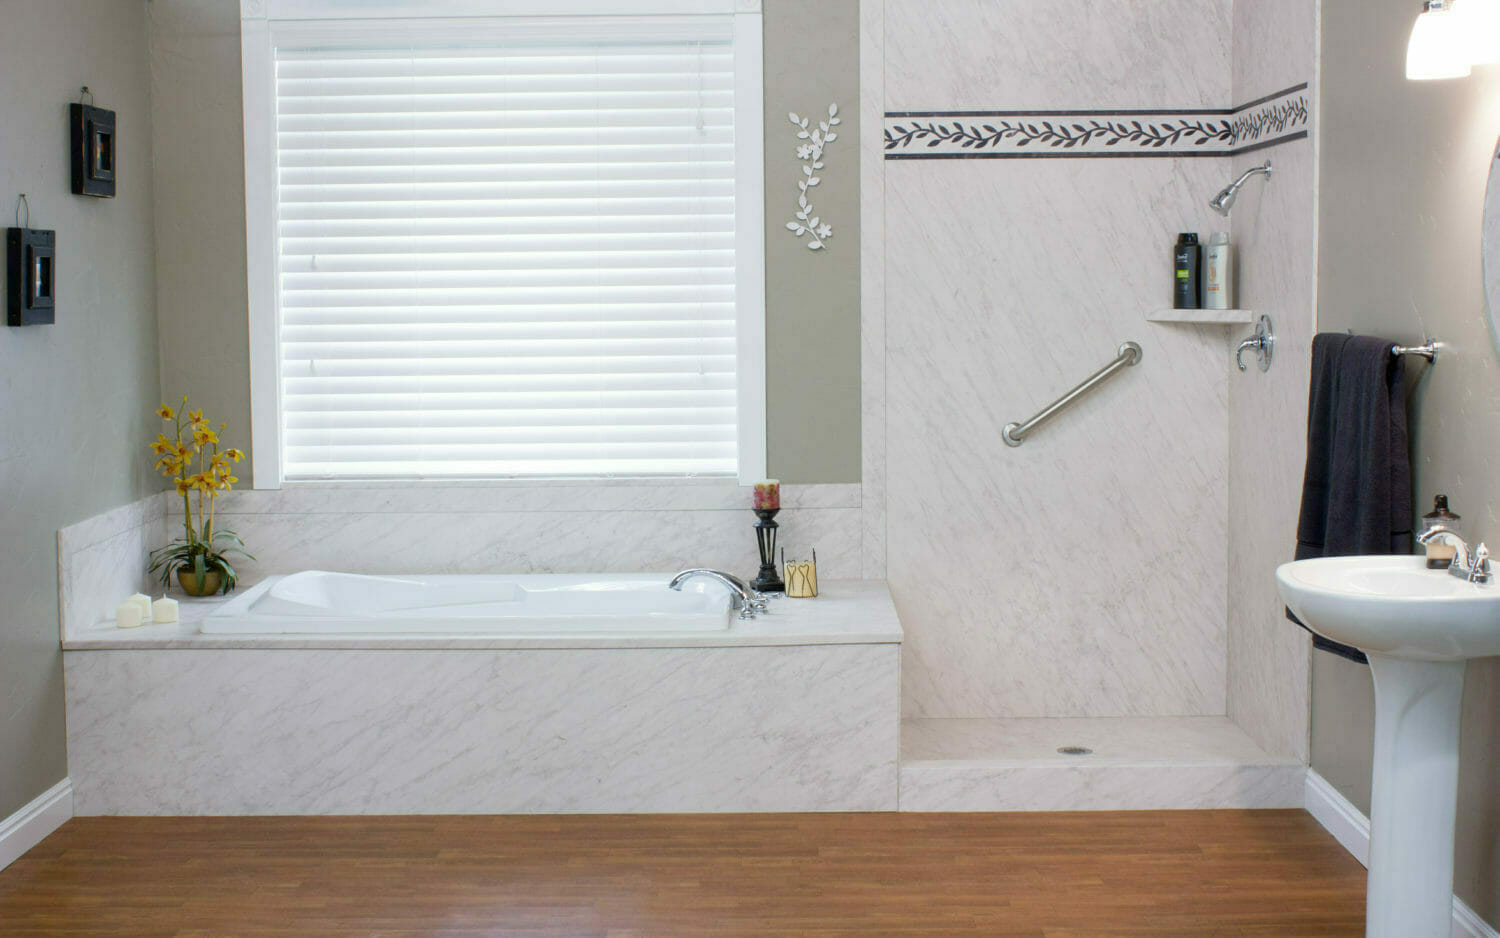 Picture of: Pros And Cons Of Converting Your Claw Foot Tub Into A Shower Tub Combo